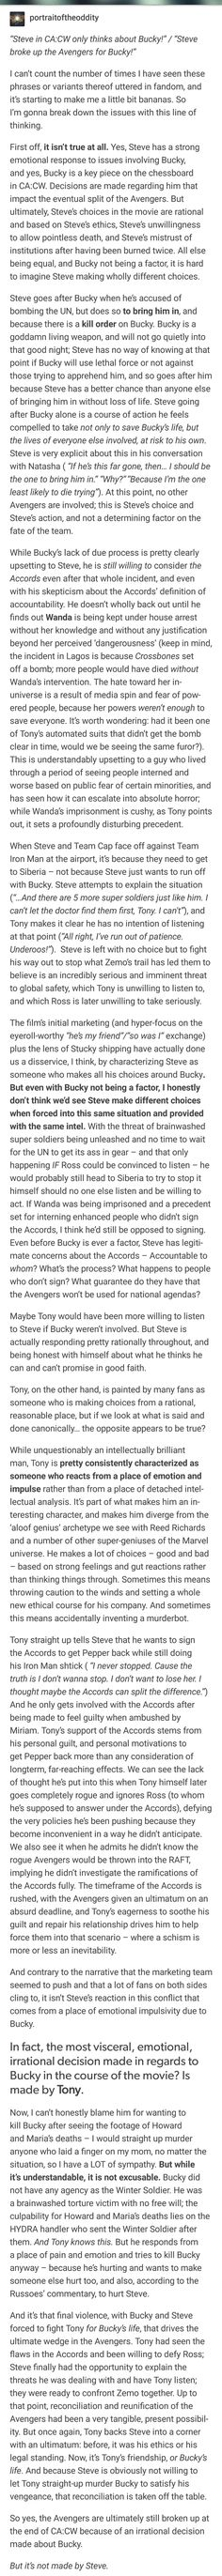 The most visceral, emotional, irrational decision made in regards to Bucky... is made by Tony.